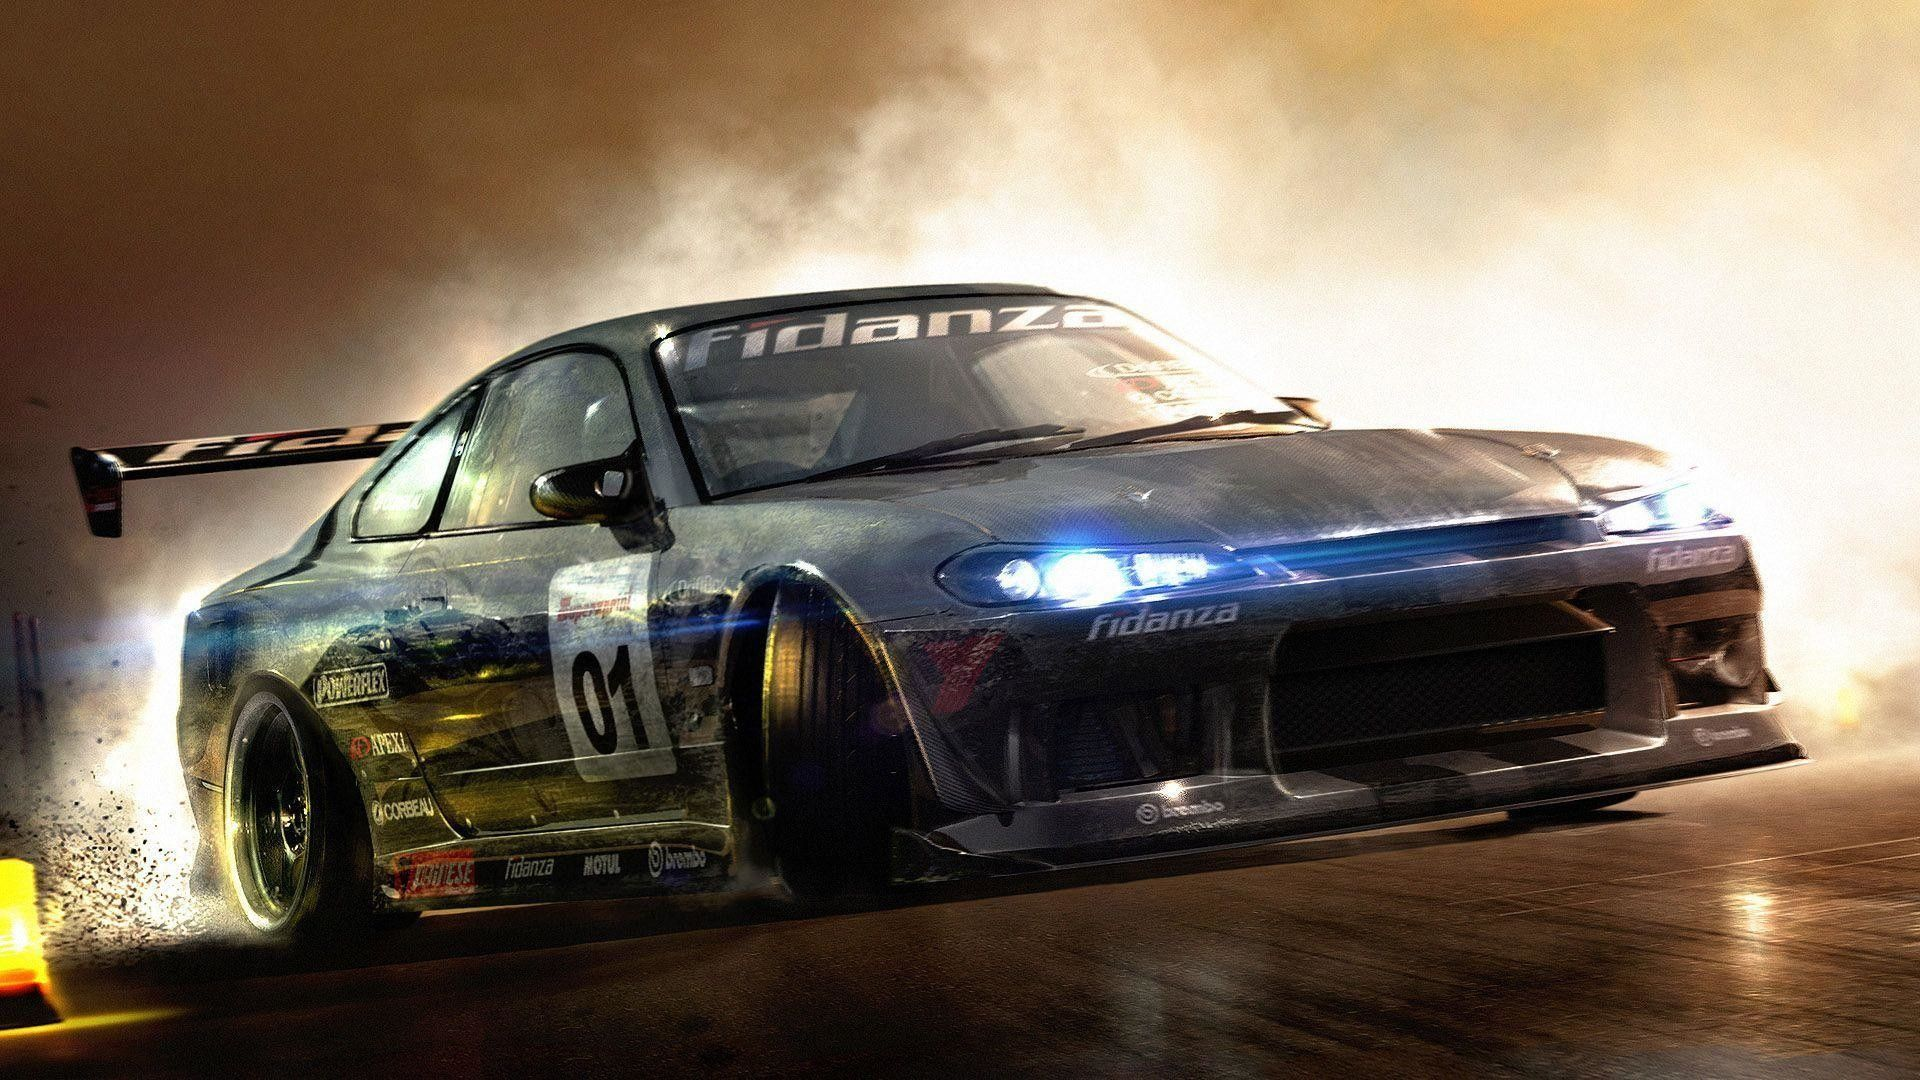 Res 1920x1080 Wallpapers For Hd Drift Car Wallpapers 1080p Car